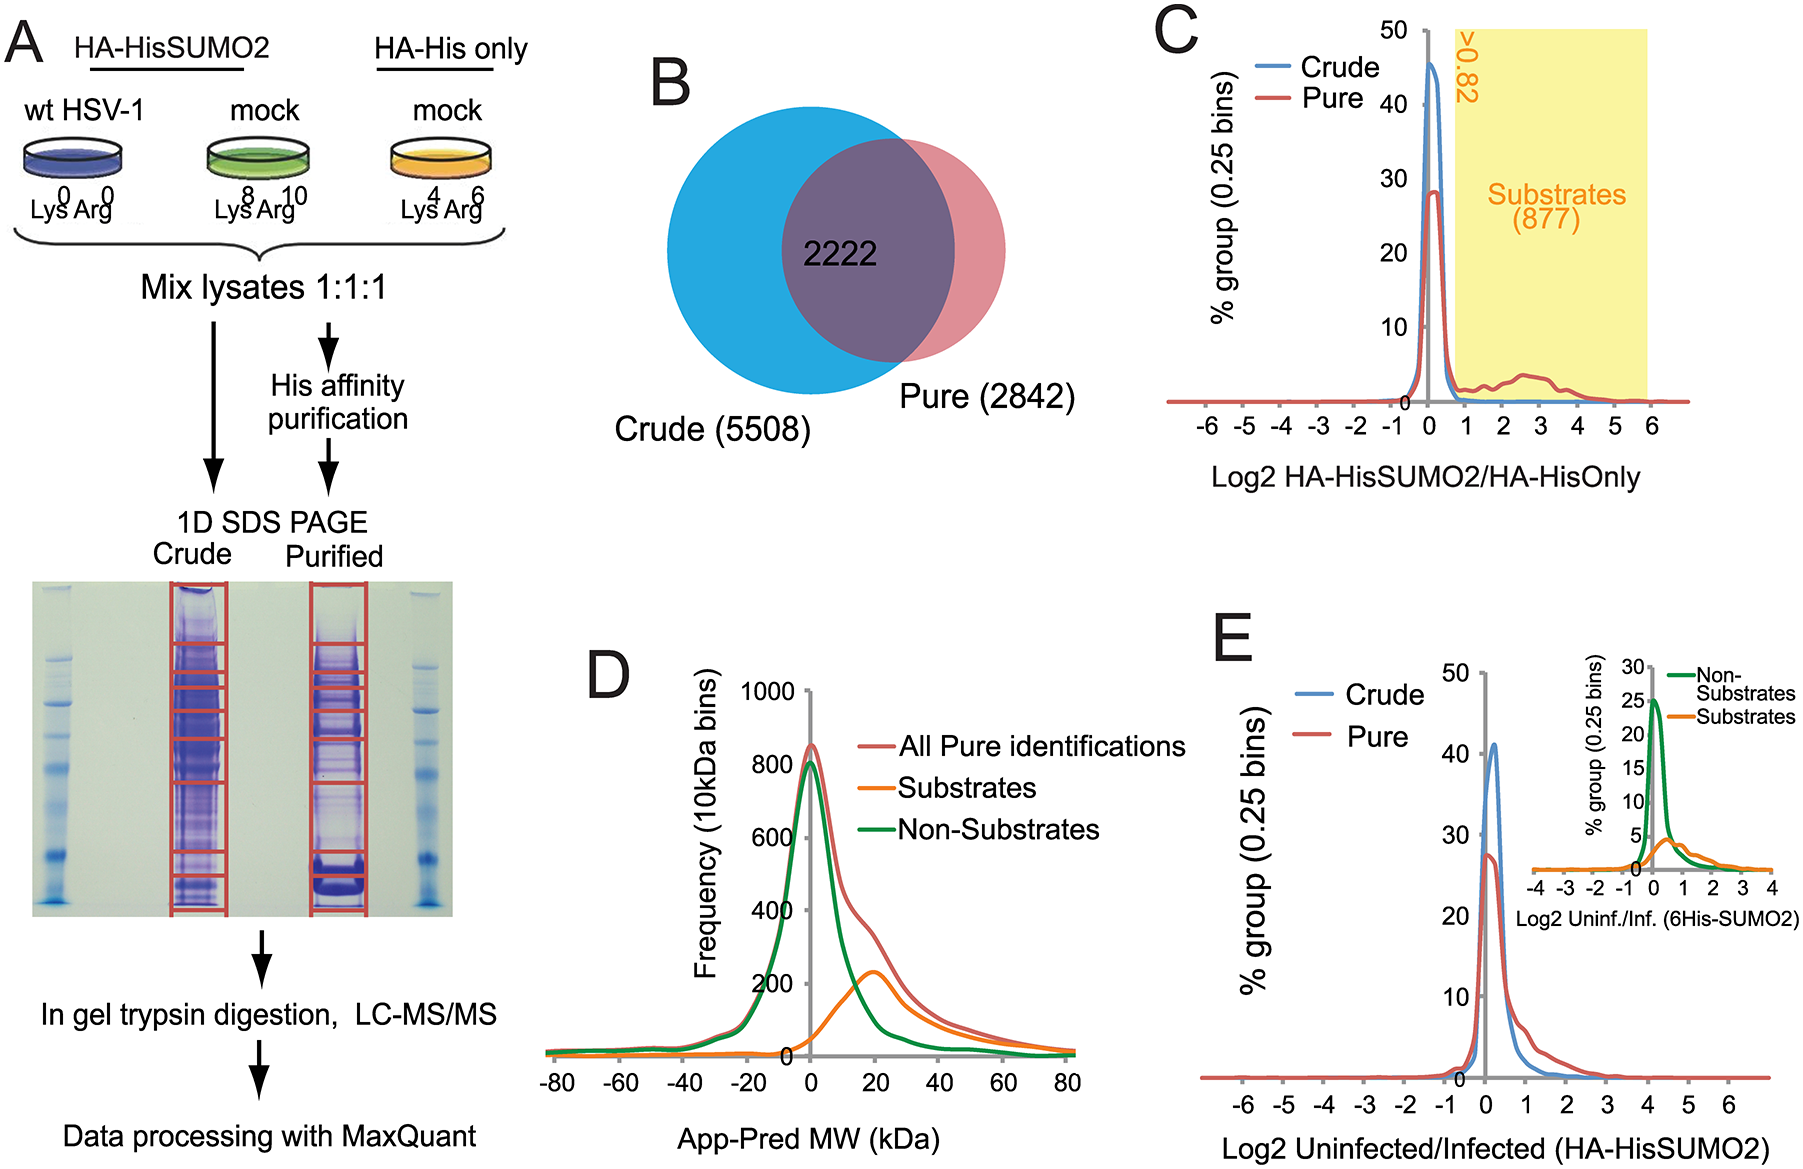 Overview of SILAC/Mass Spectrometry proteomics analysis comparing mock and wt HSV-1 infected HA-HisSUMO2 cells.